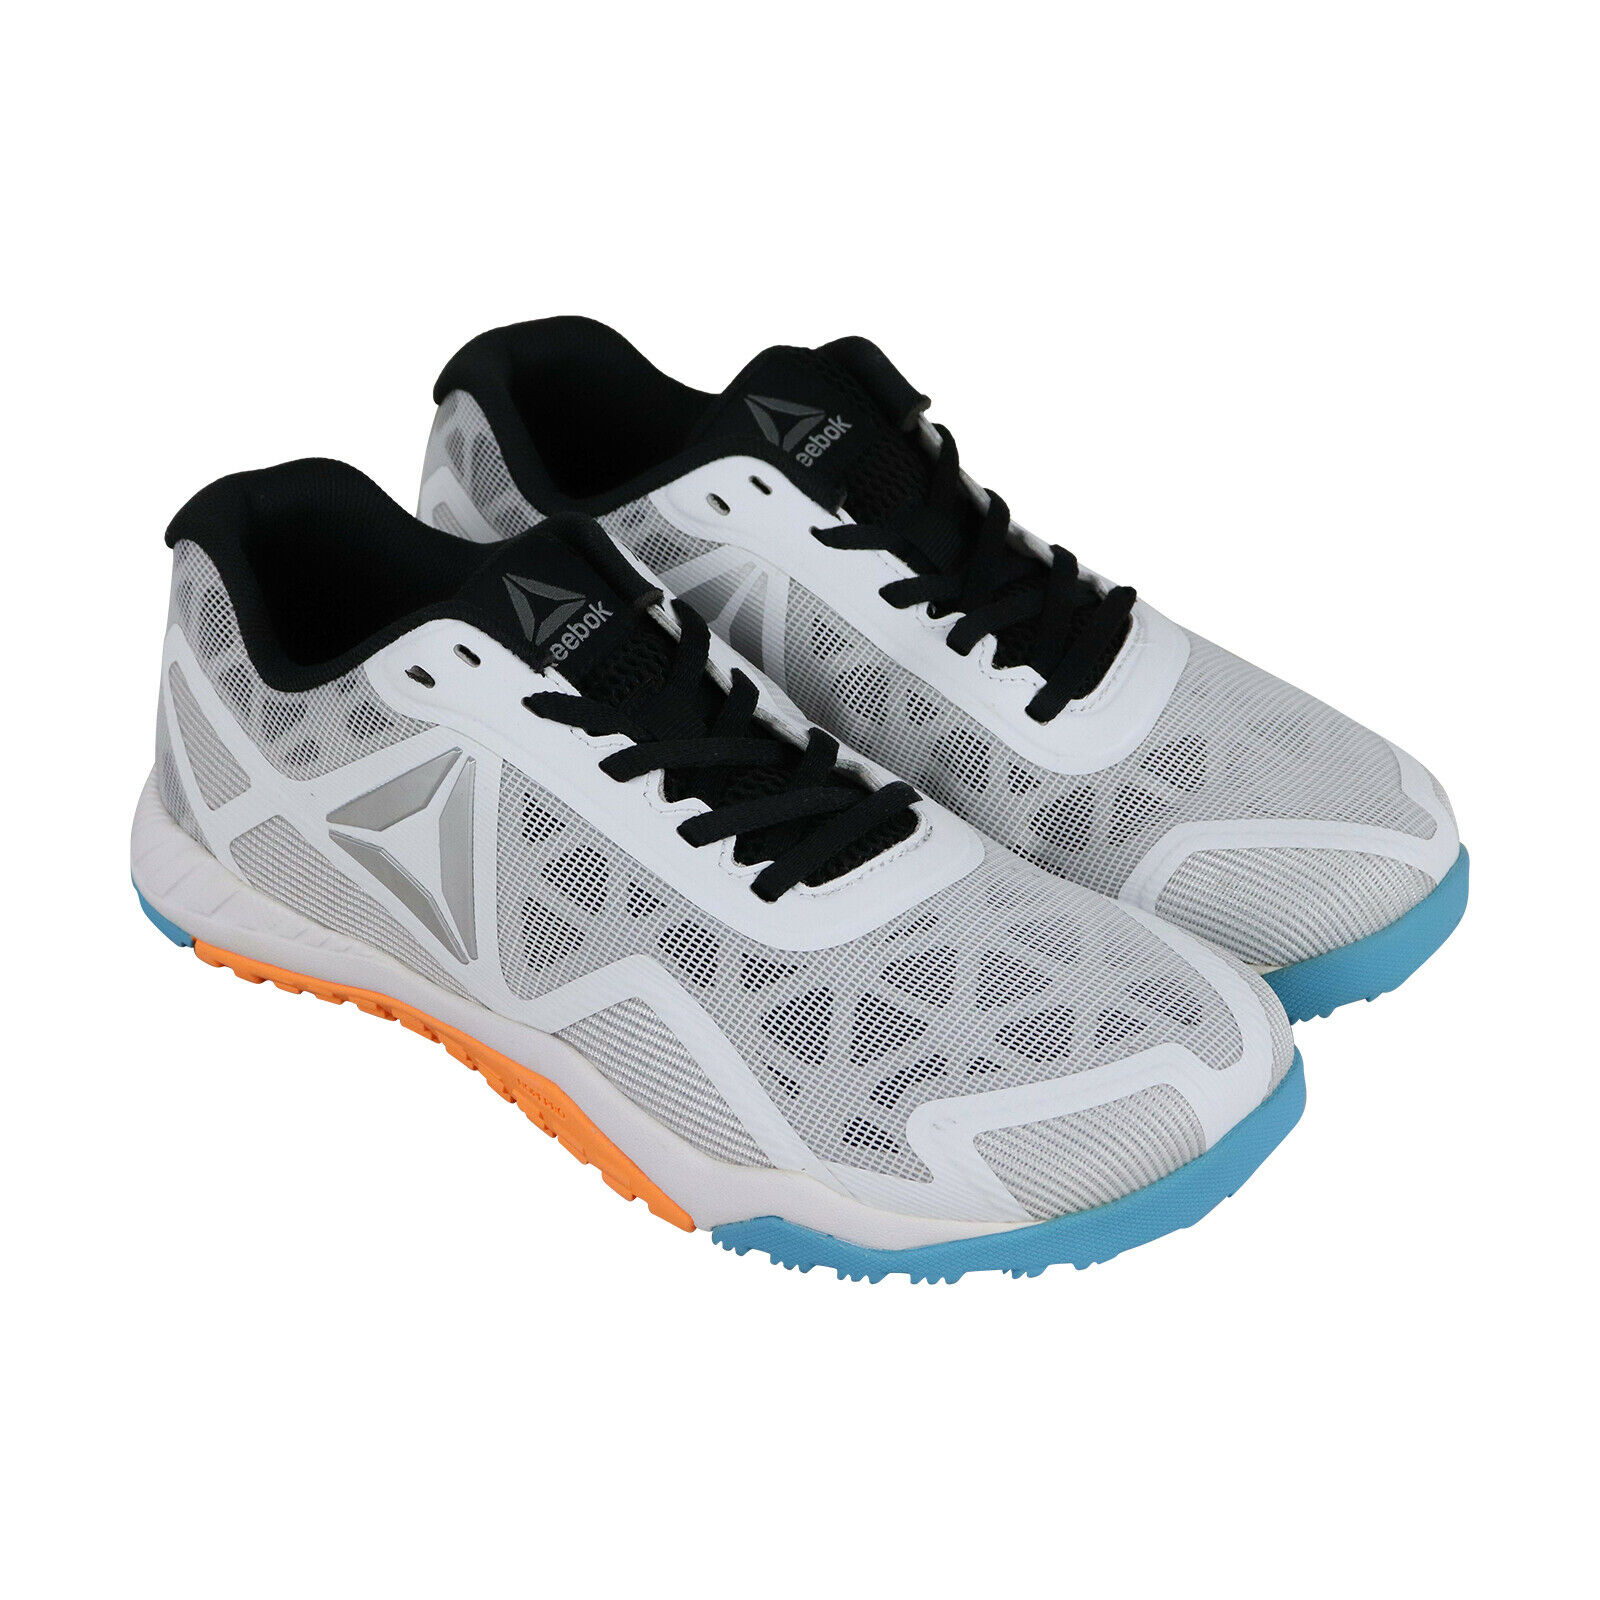 Reebok Ros Workout Tr 2.0 Mens White Low Top  Athletic Gym Cross Training shoes  discount